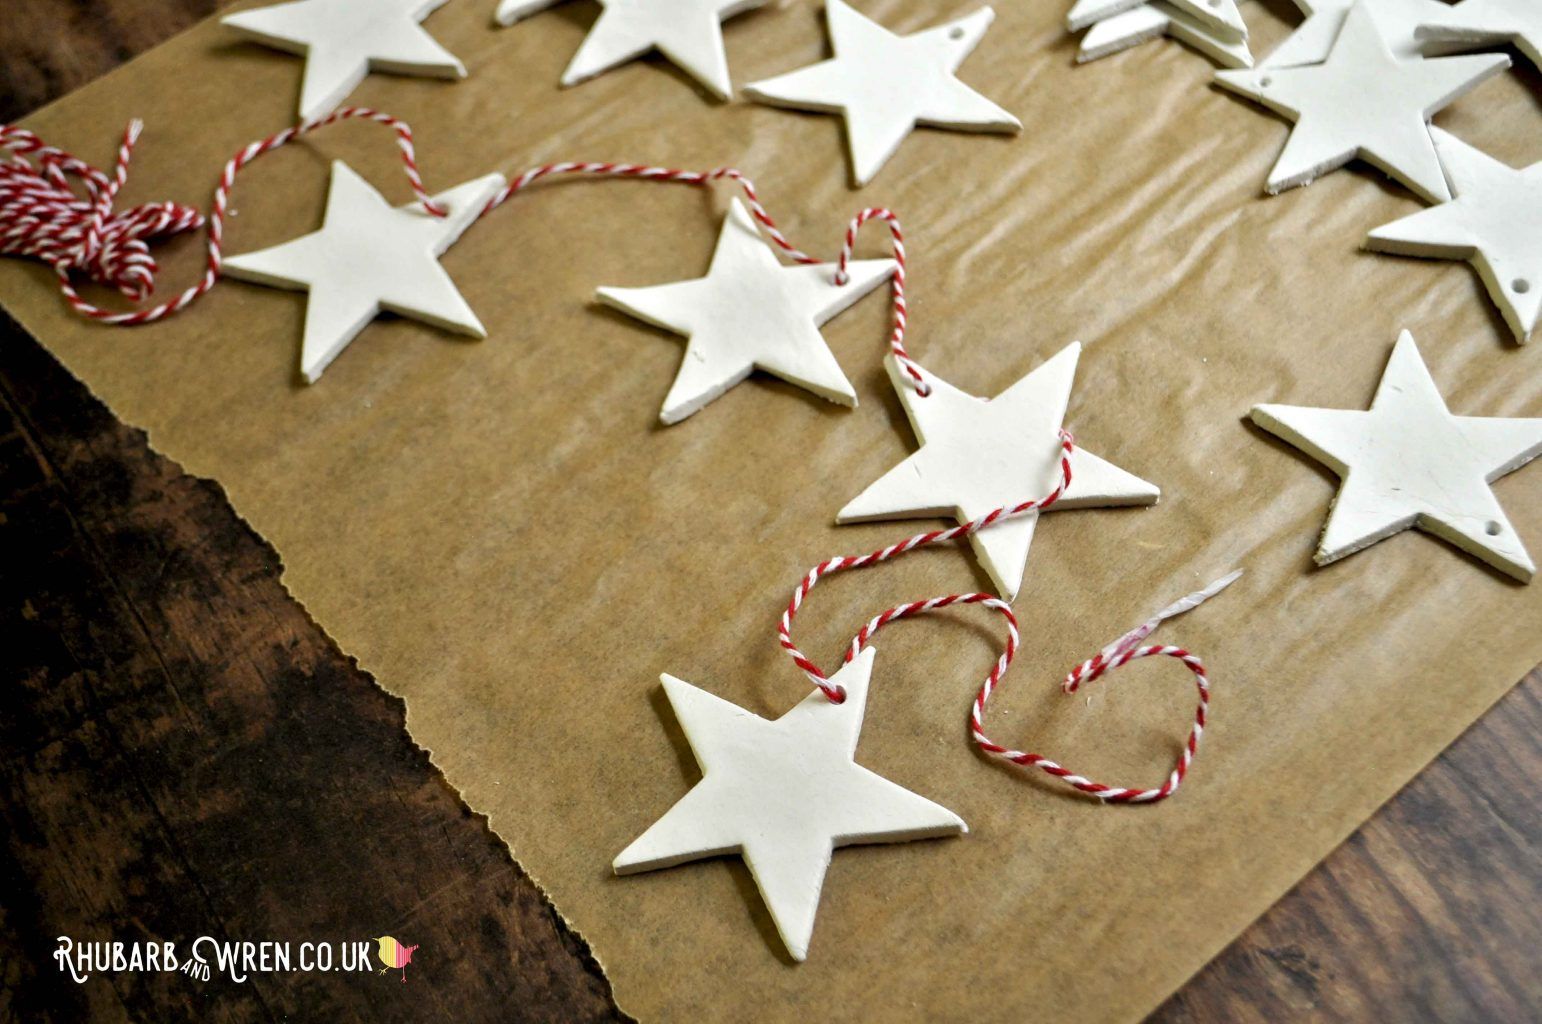 Threading clay stars onto bakers twine to make a Christmas garland